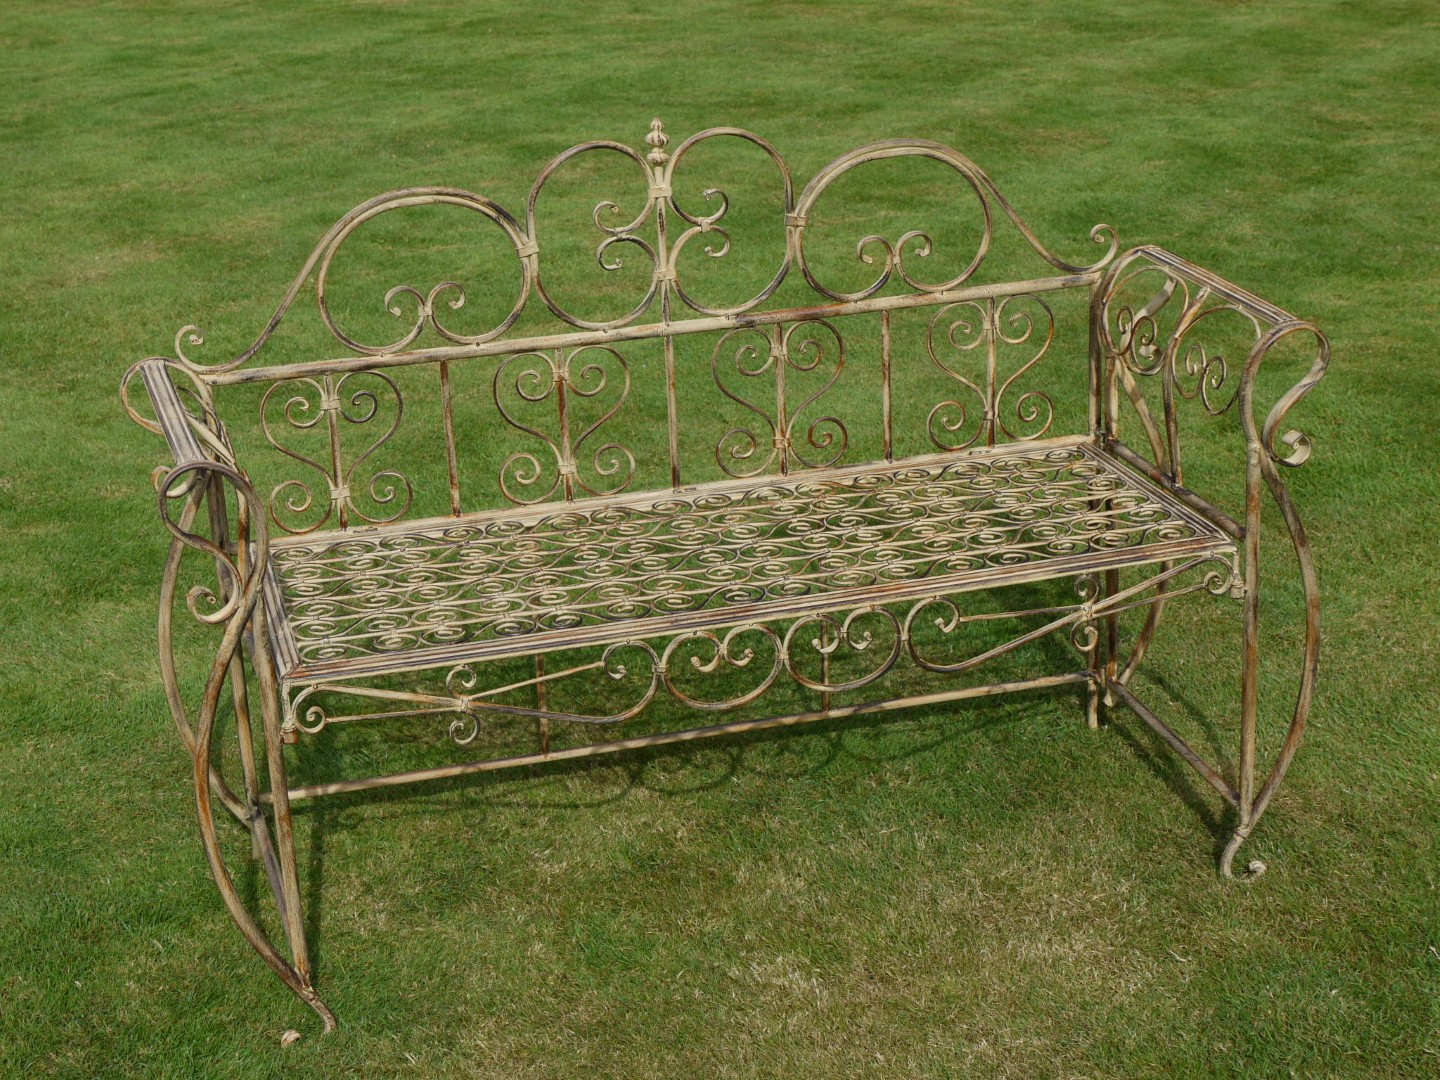 Antiqued Cream Metal Garden Bench